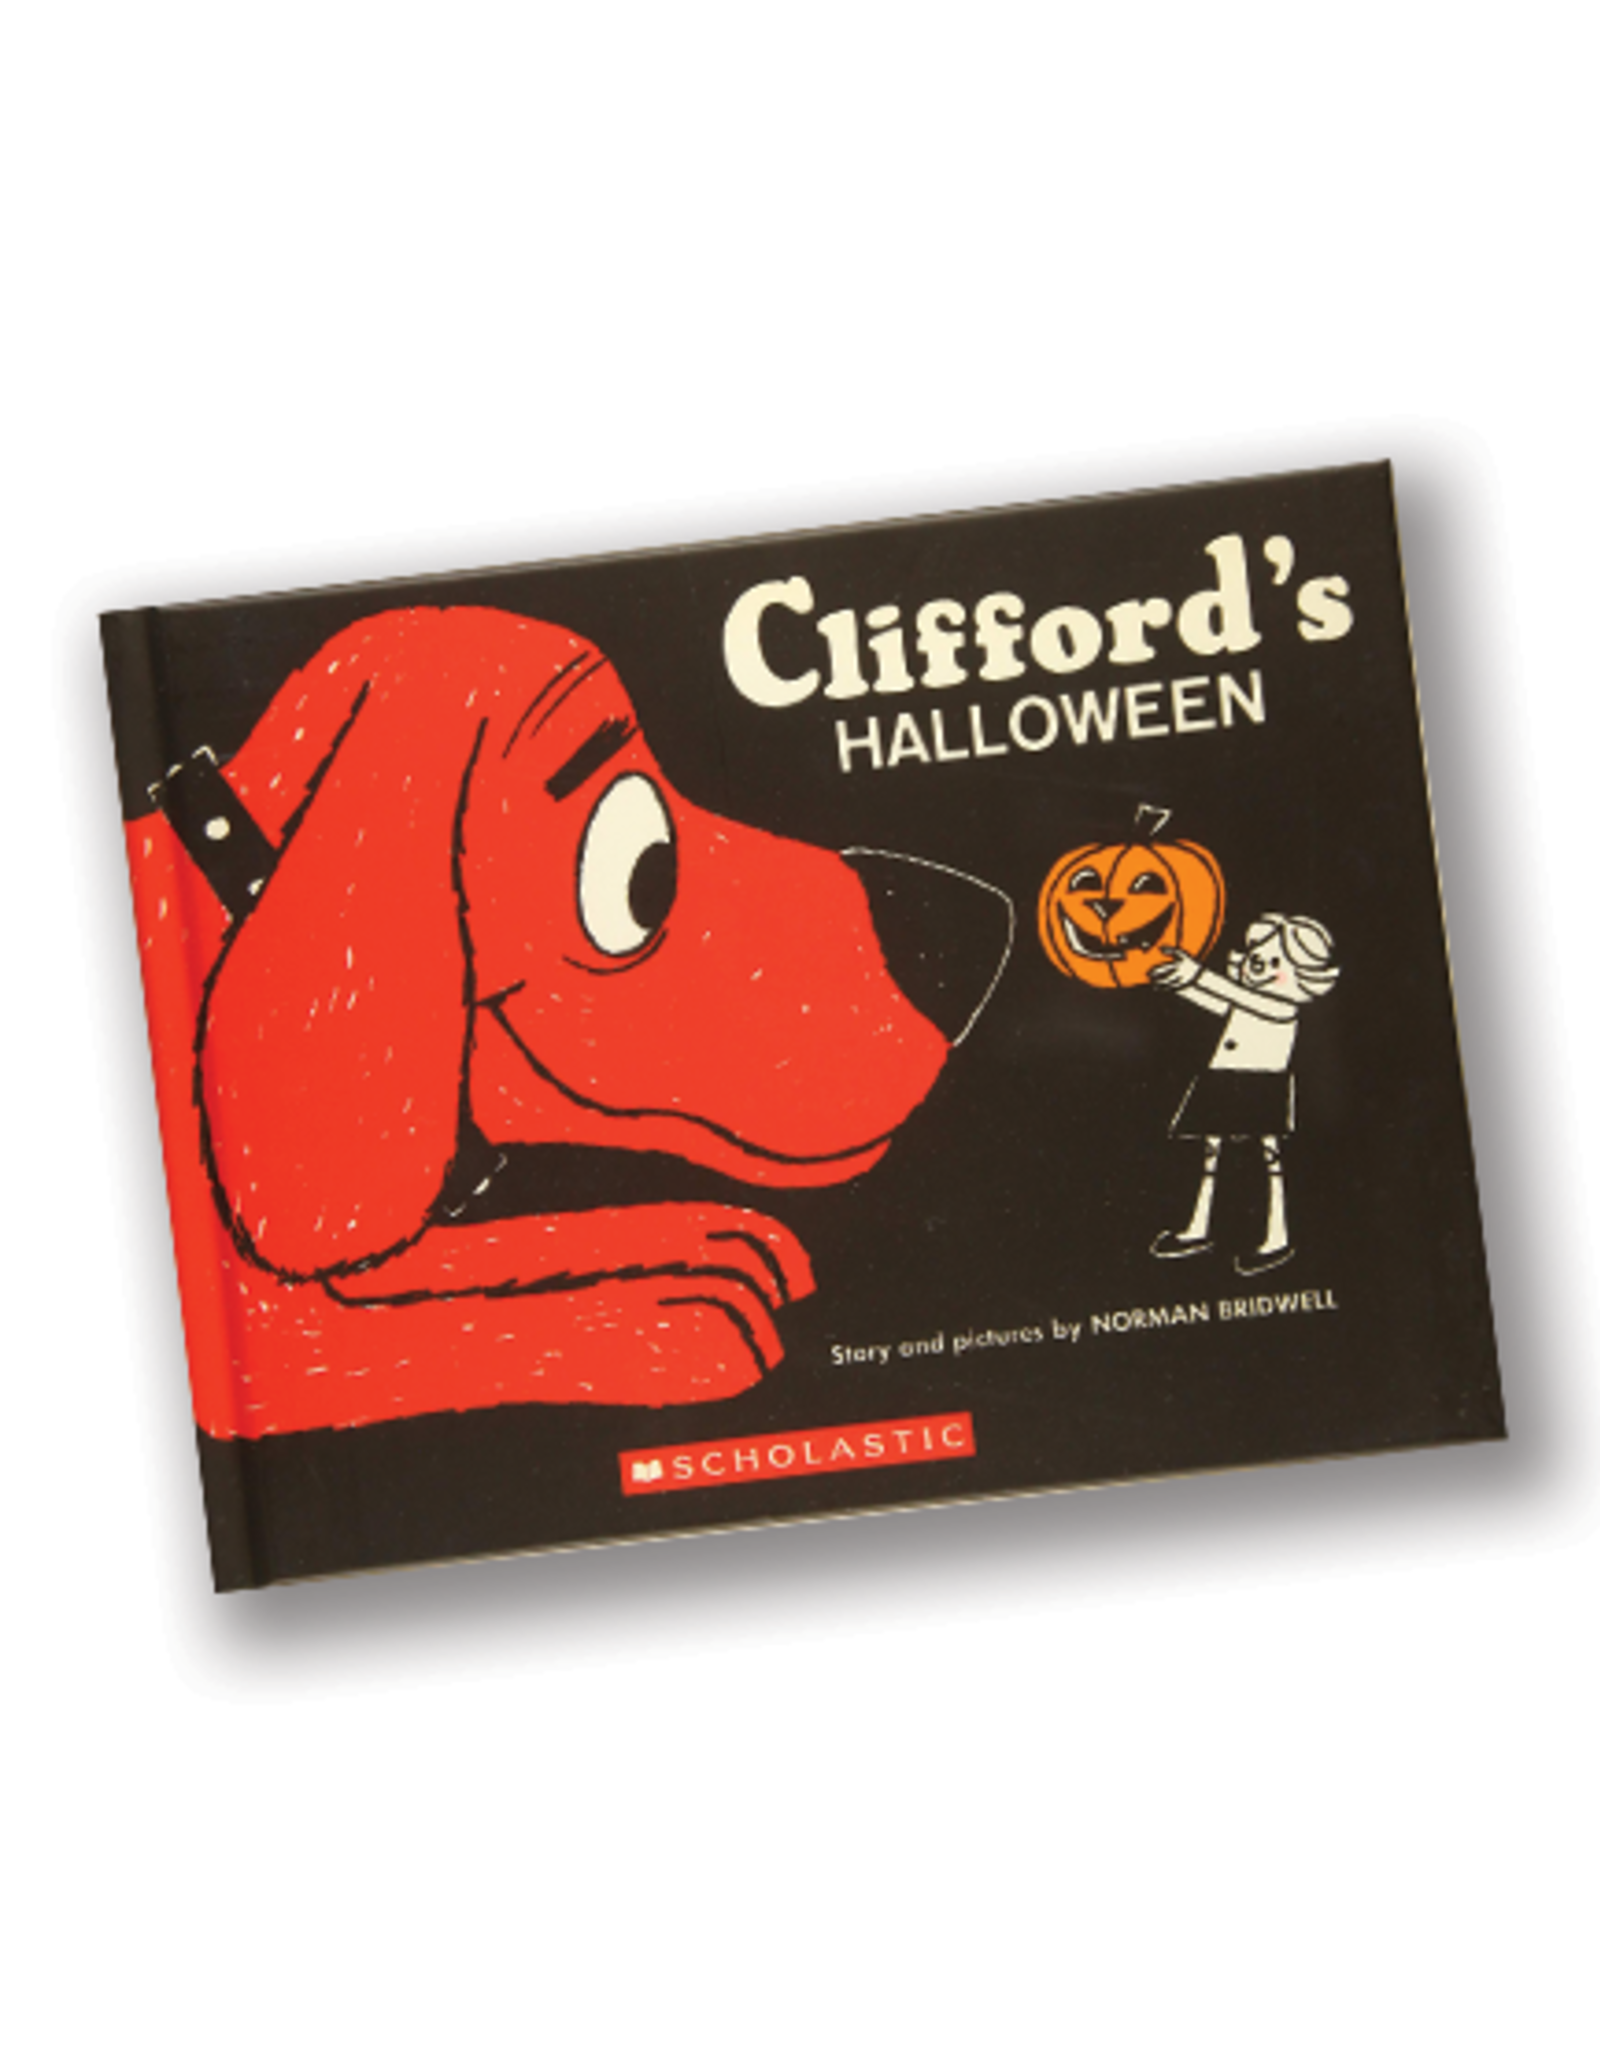 Clifford's Halloween:  Vintage Hardcover Edition